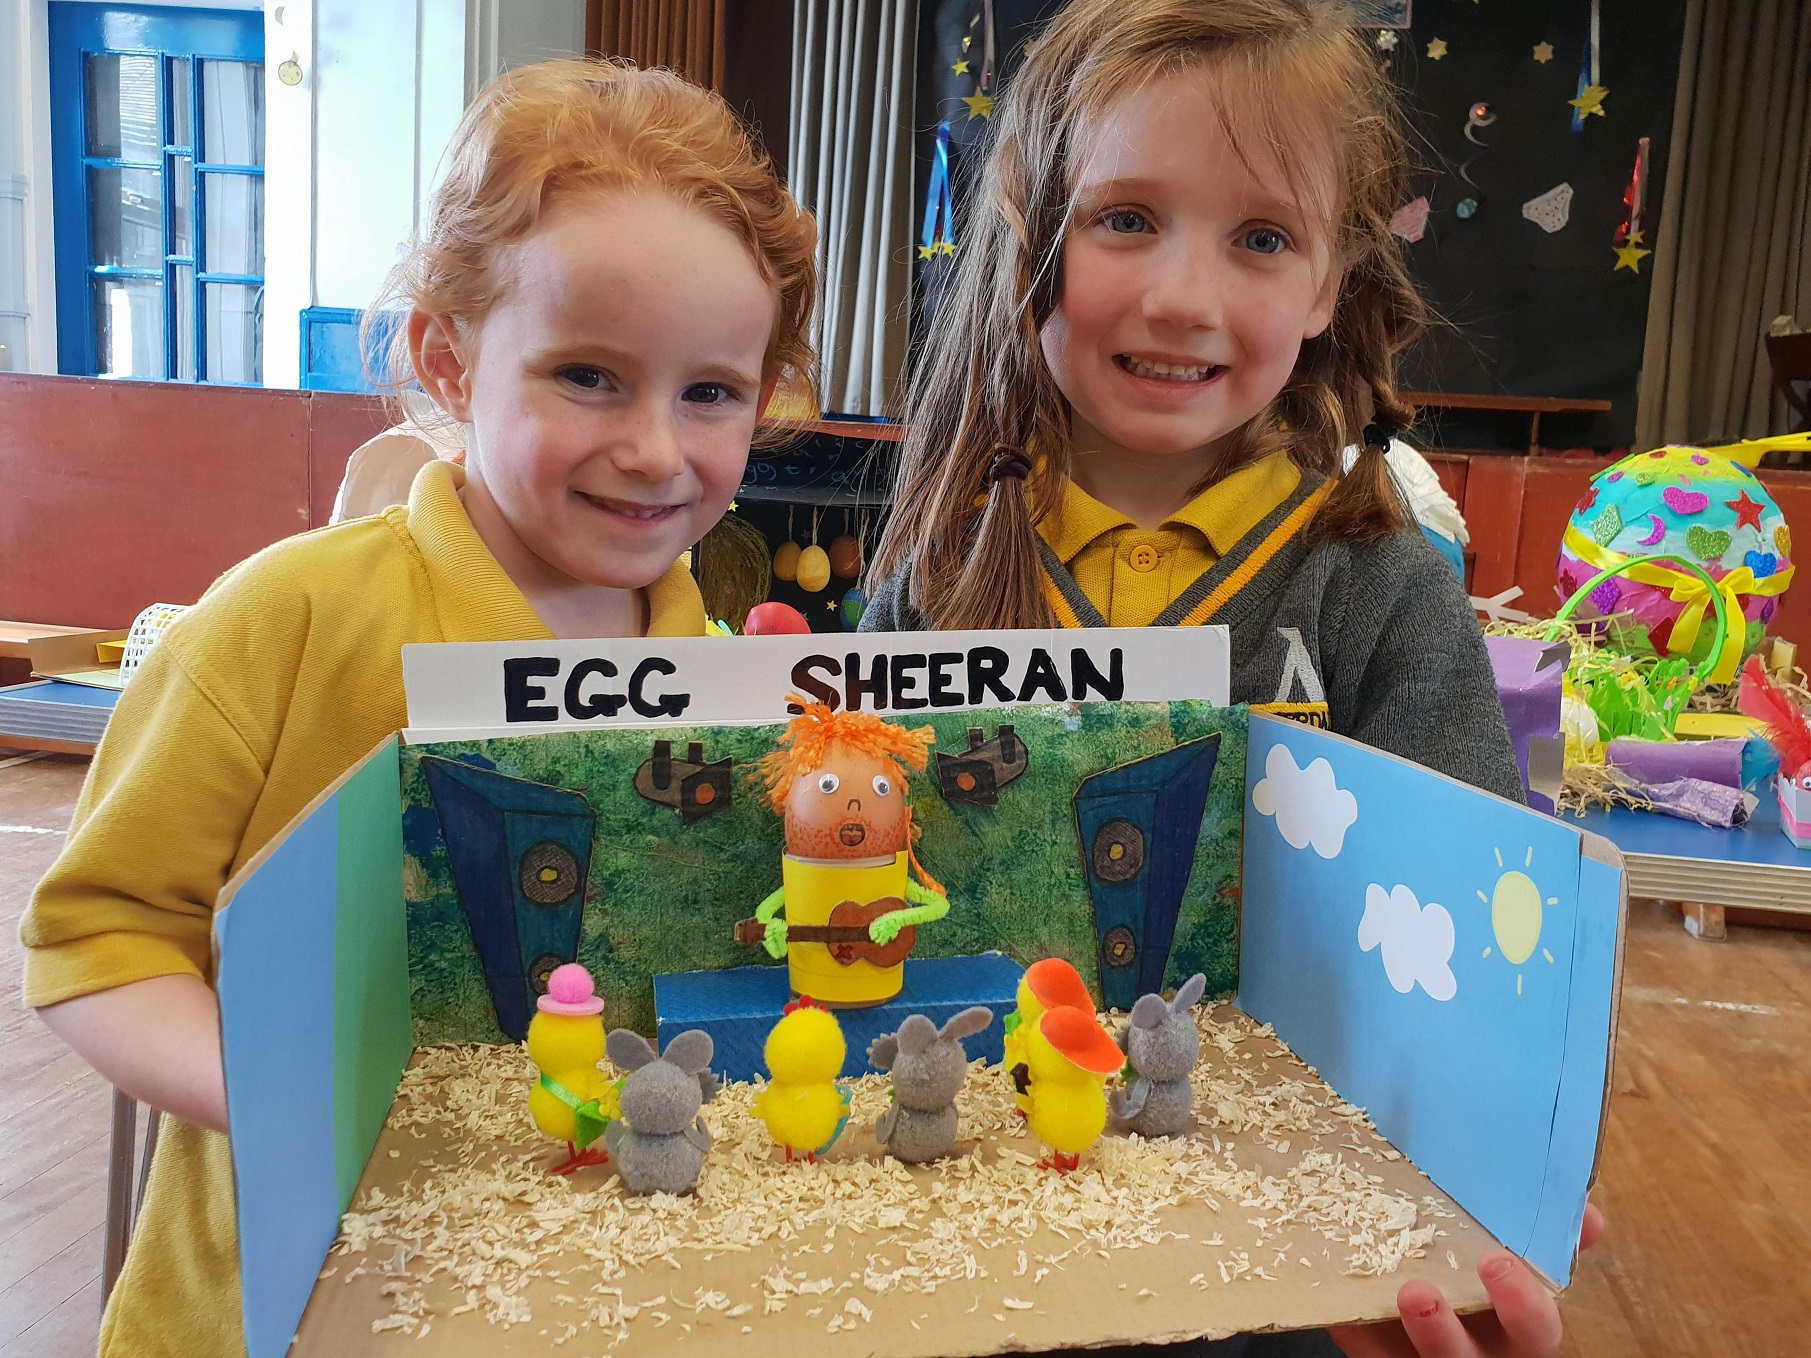 Lucia Bisby, four, left, shows off her Egg Sheeran concert creation with friend Lily Jenkinson, five. Penguin PR: public relations, media and communications